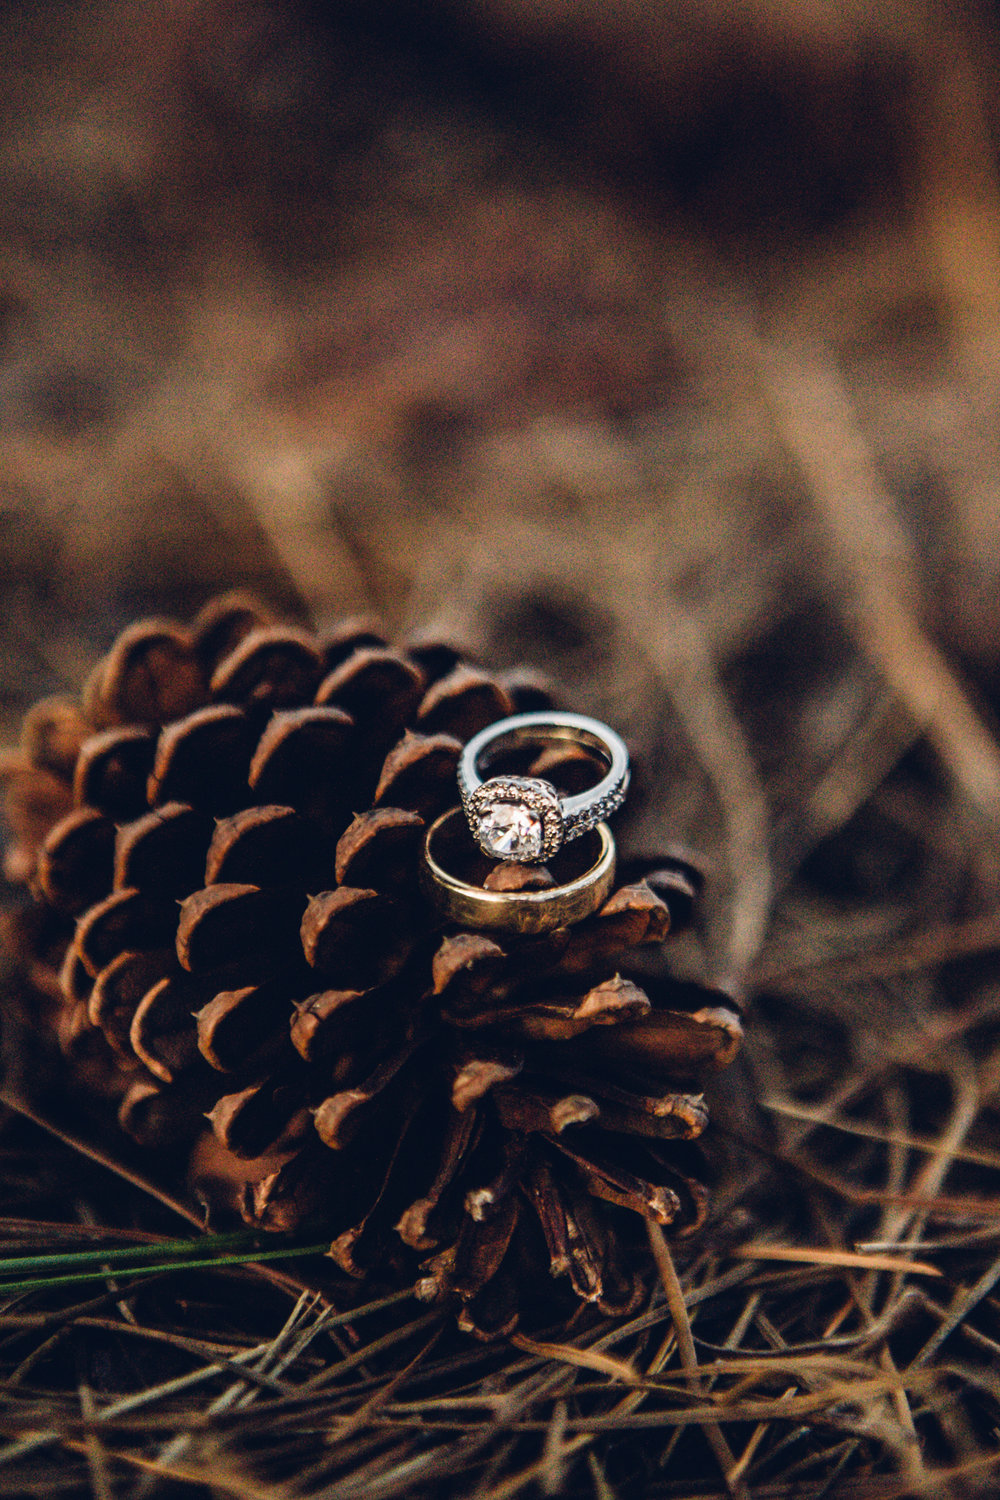 Danny & Karleigh by Get Together Photography small 235.jpg